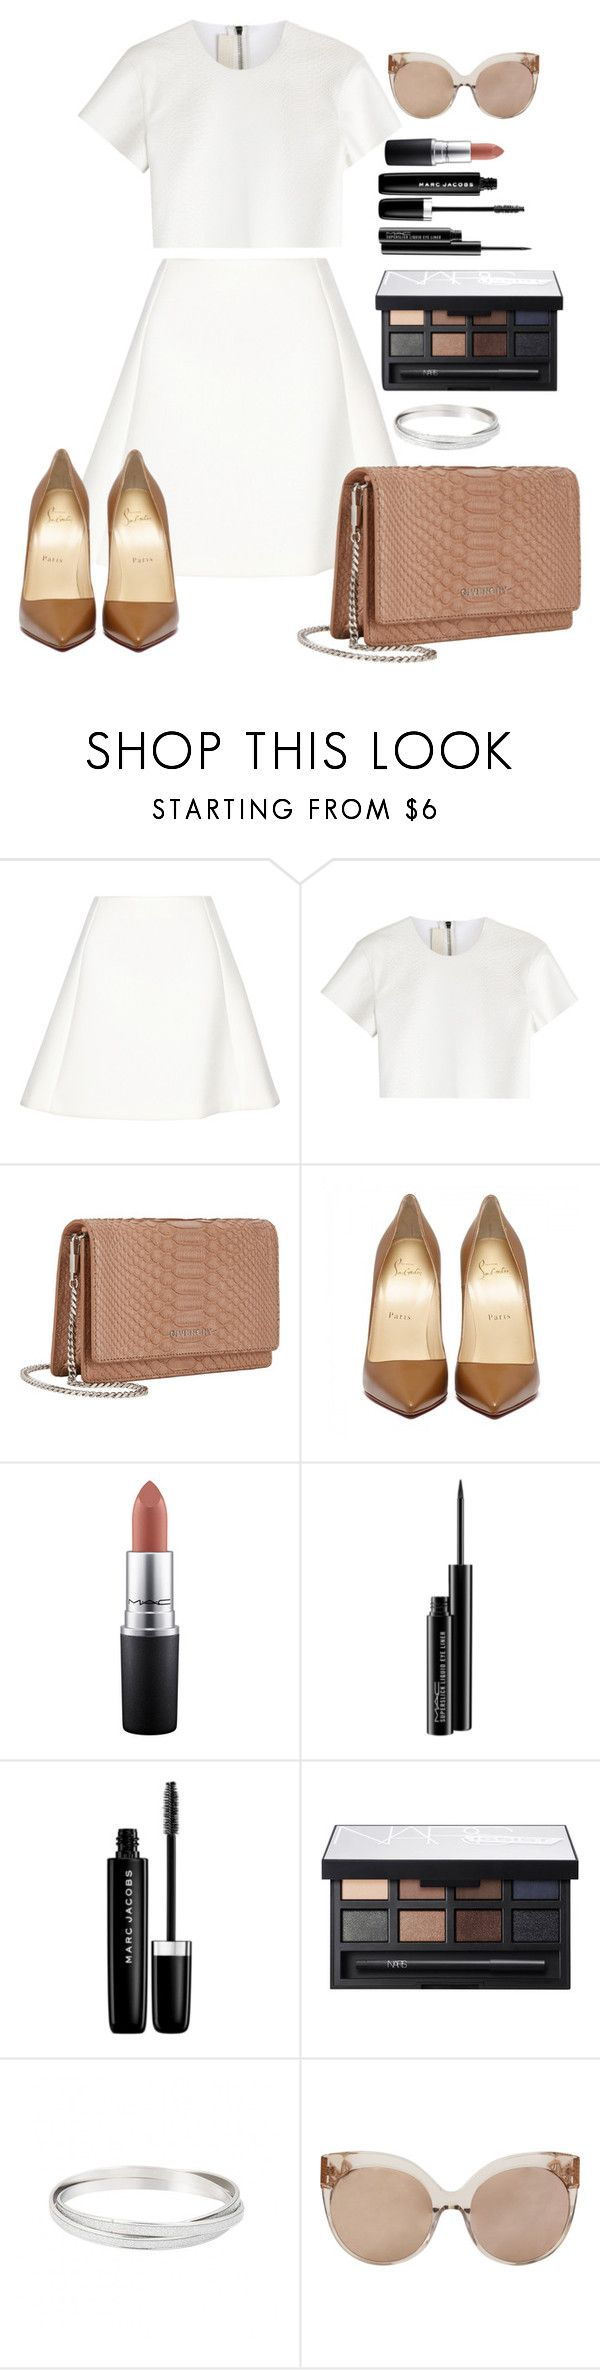 """Untitled #1418"" by fabianarveloc on Polyvore featuring Neil Barrett, Givenchy, MAC Cosmetics, Marc Jacobs, NARS Cosmetics and Linda Farrow"